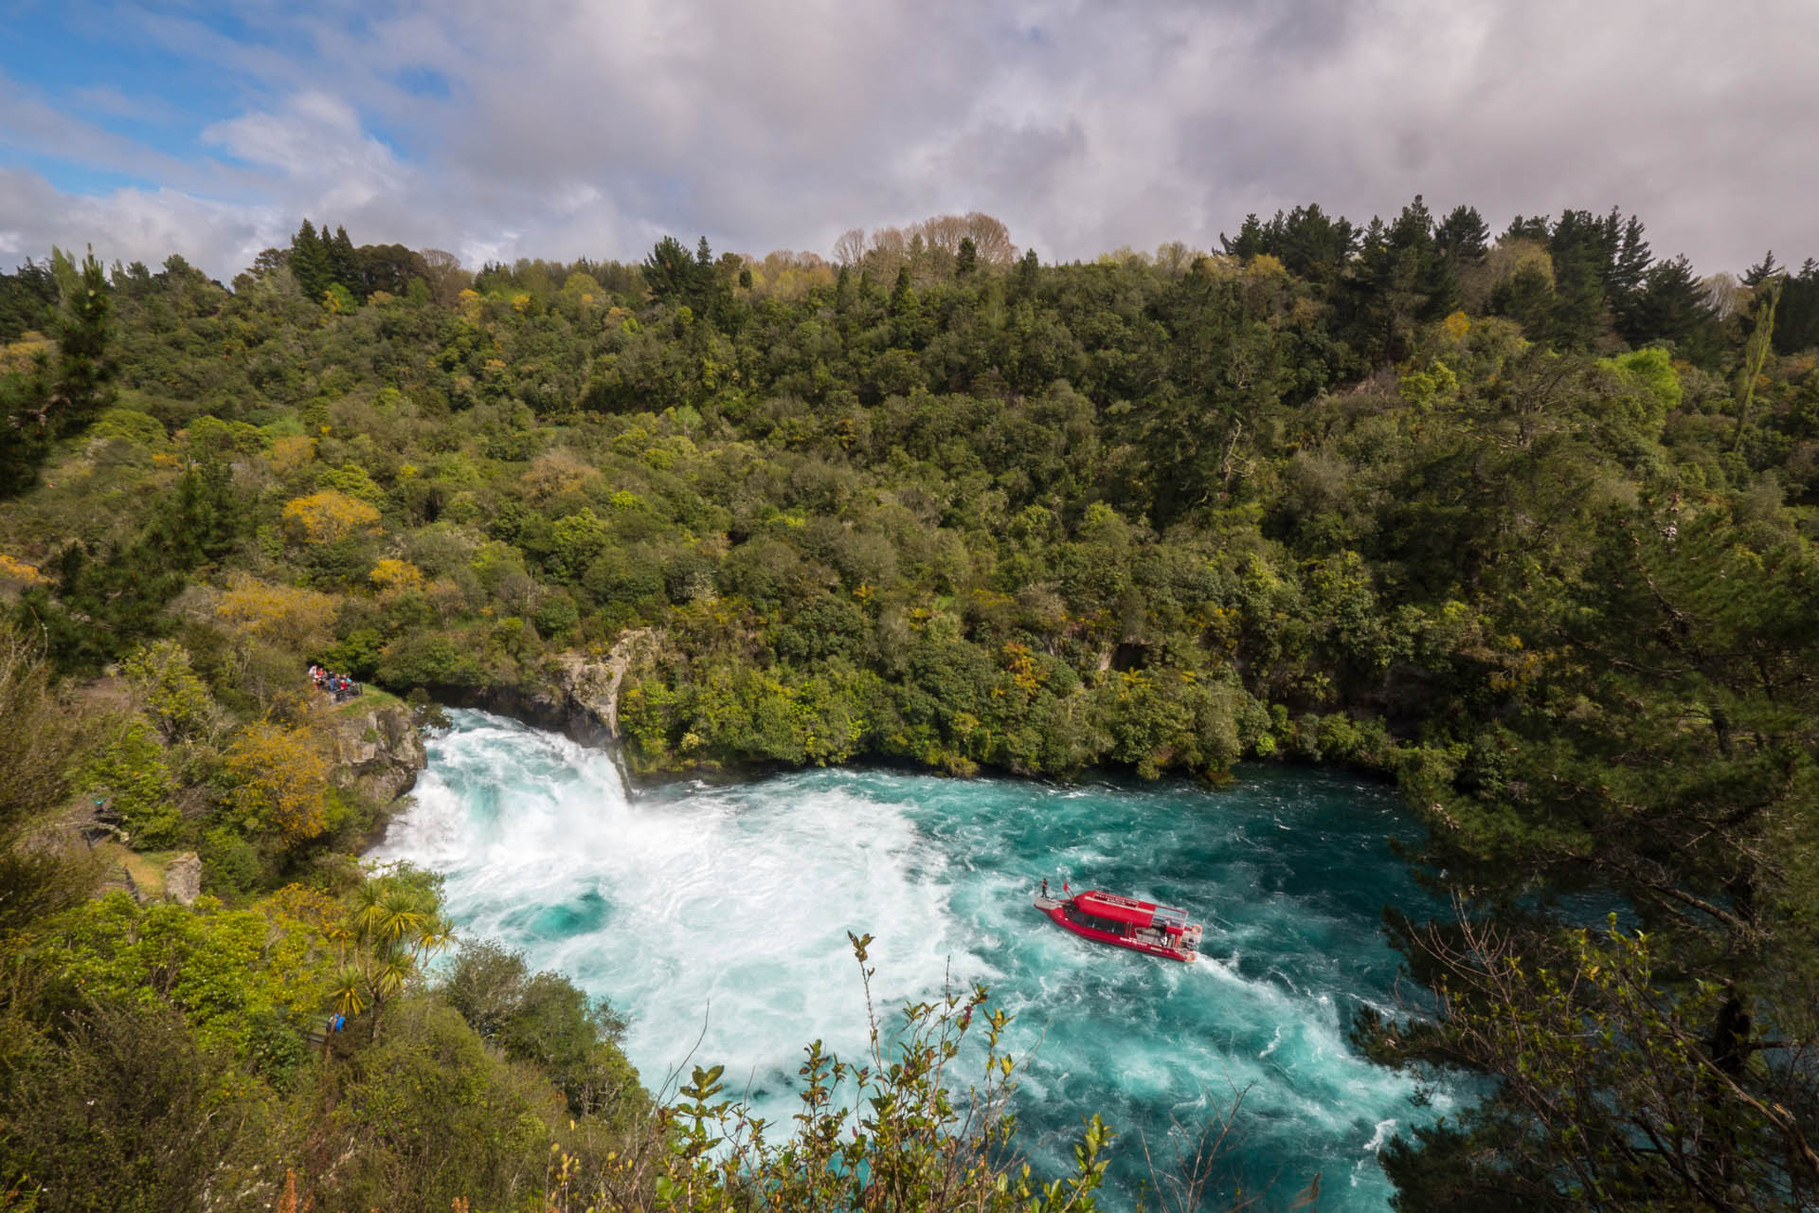 Huka Falls and river cruise boat, near Taupo